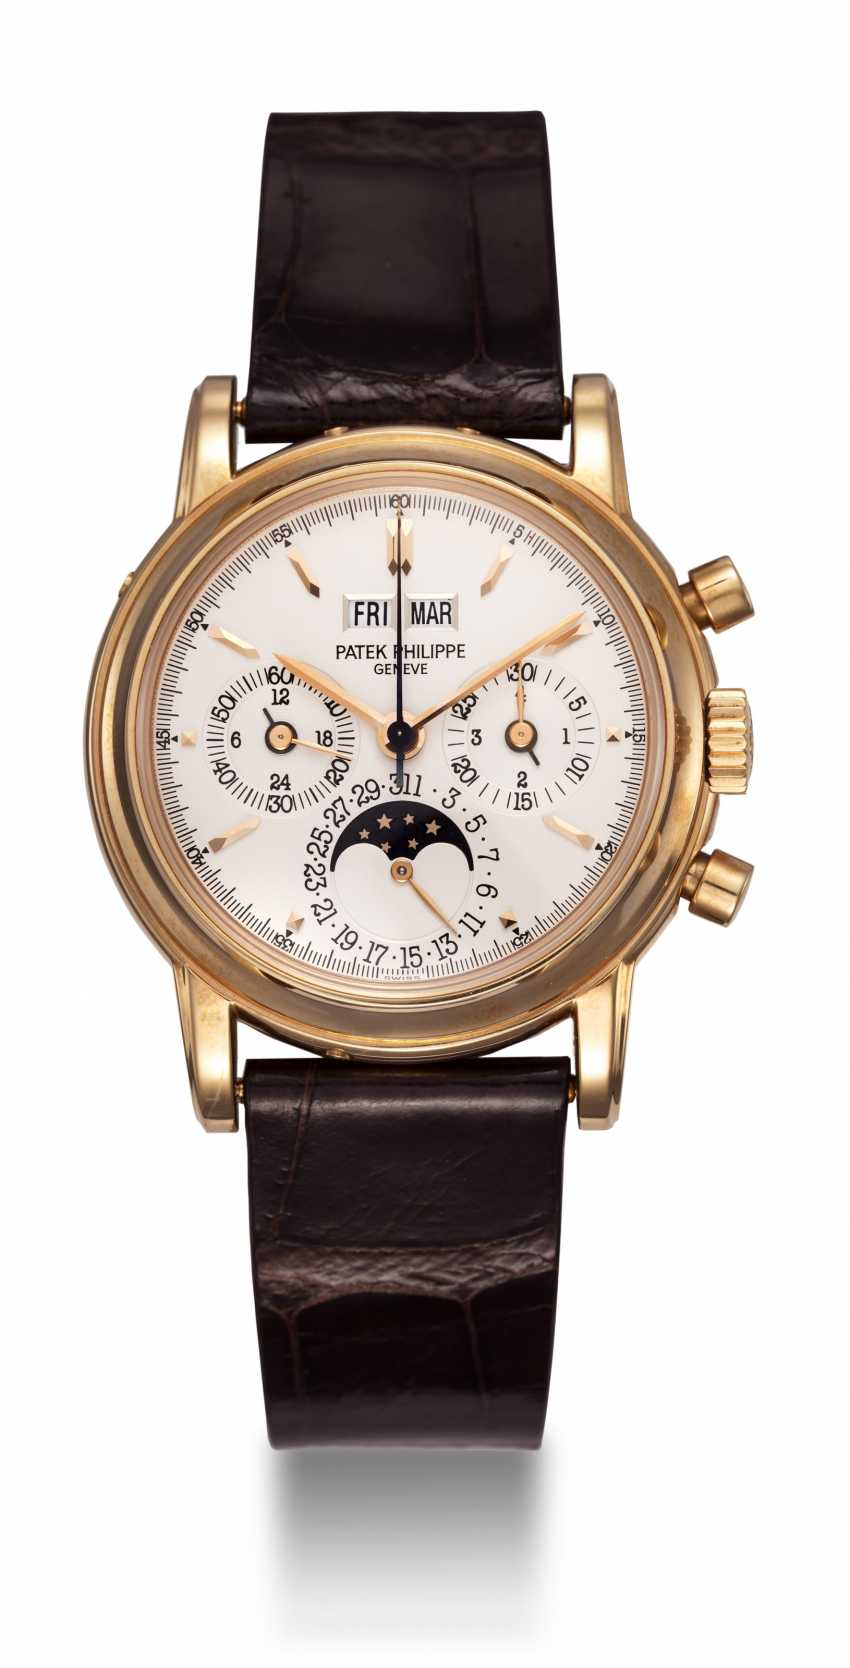 PATEK PHILIPPE, REF. 3970ER-12, A GOLD PERPETUAL CALENDAR CHRONOGRAPH WRISTWATCH - photo 3